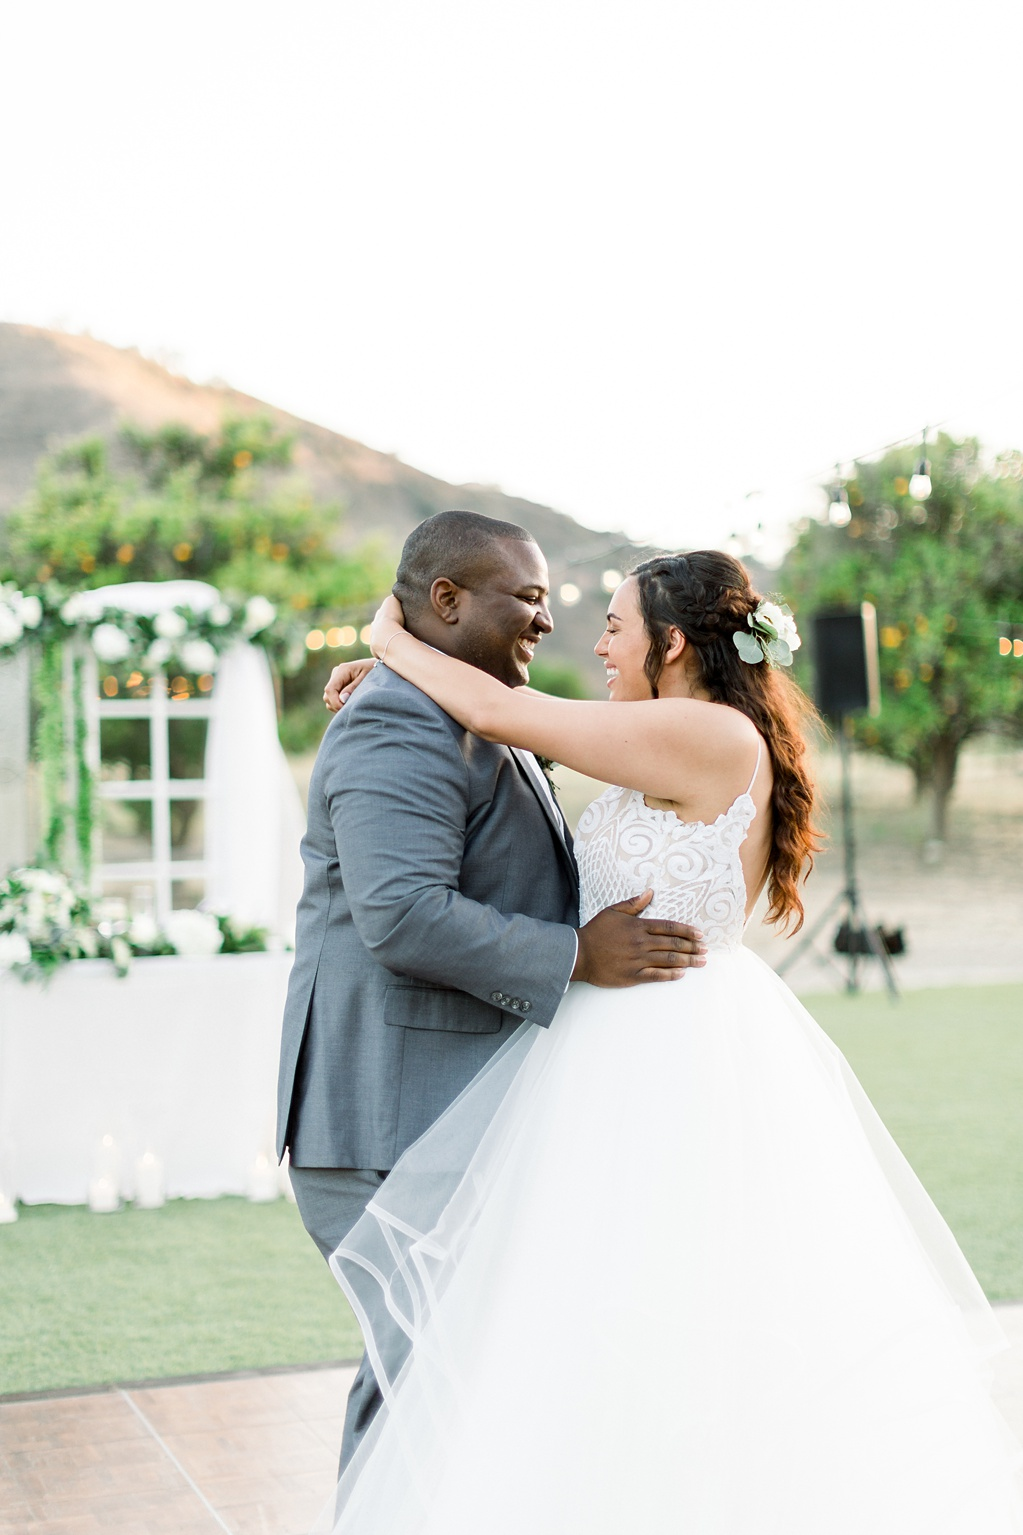 An Organic Floral Inspired Summer Wedding in the open fields of Hamilton Oaks, San Juan Capistrano by Wedding Photographer Madison Ellis (19)